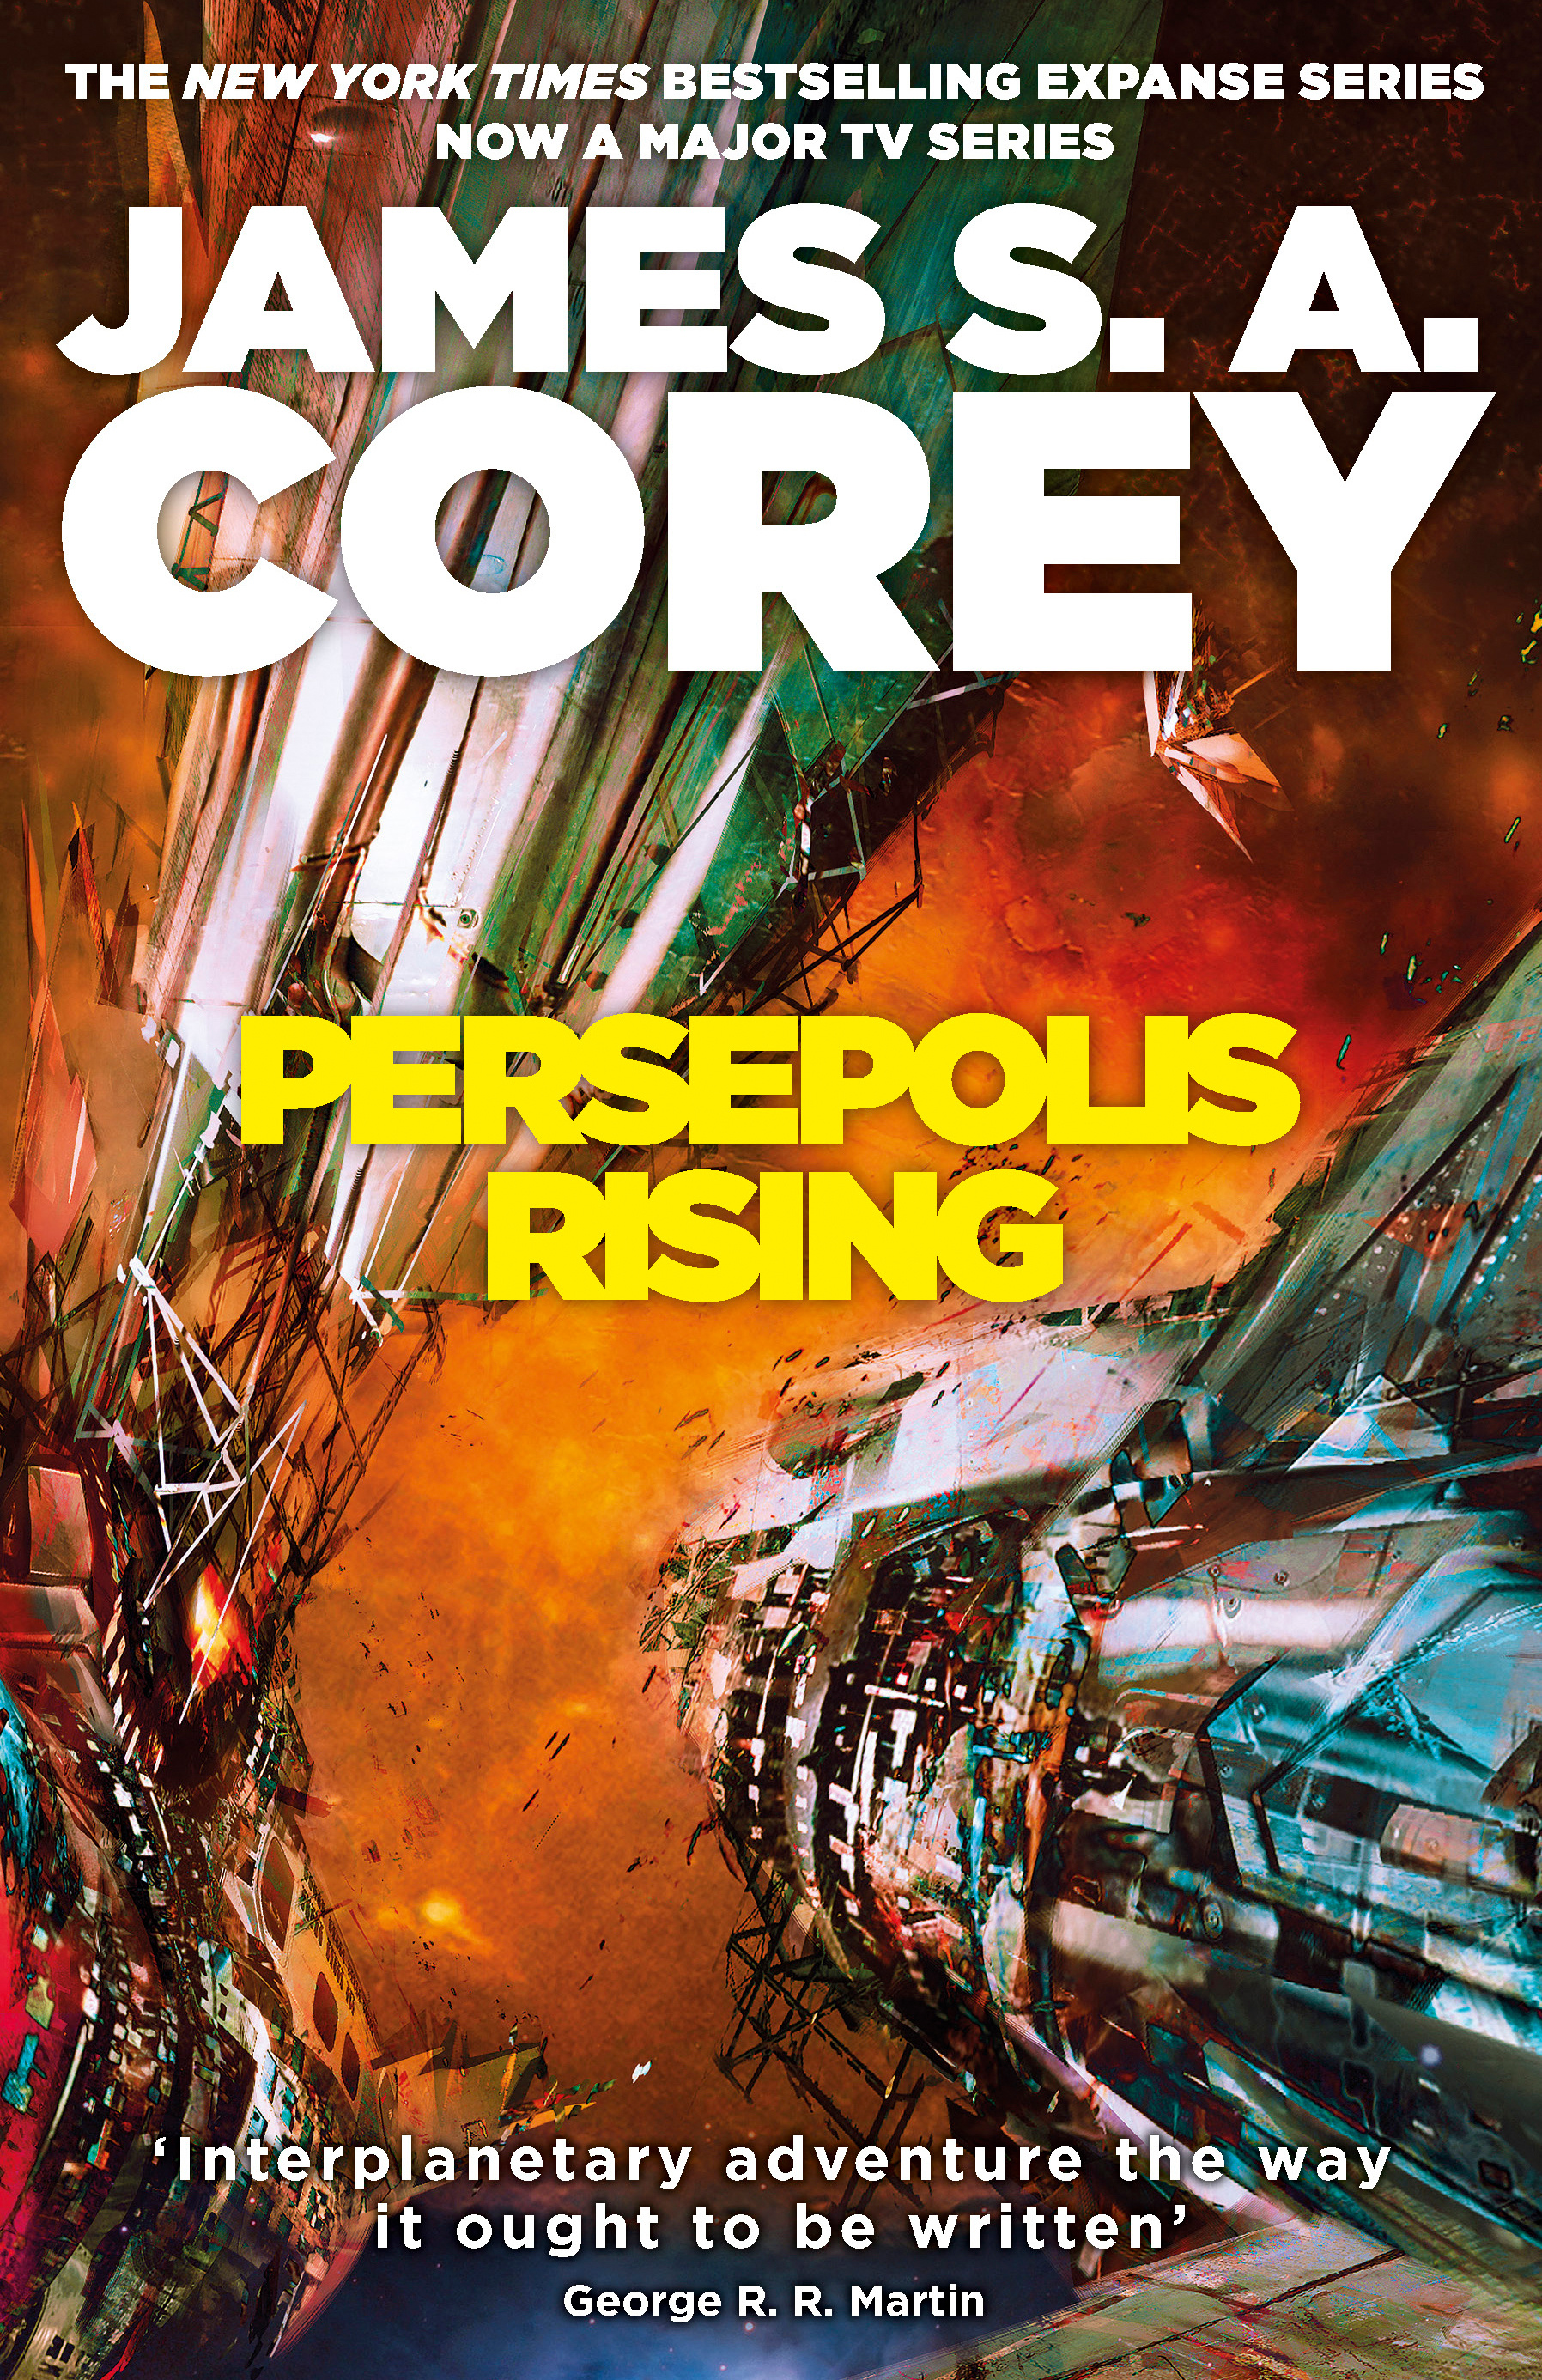 Persepolis Rising by James S A Corey